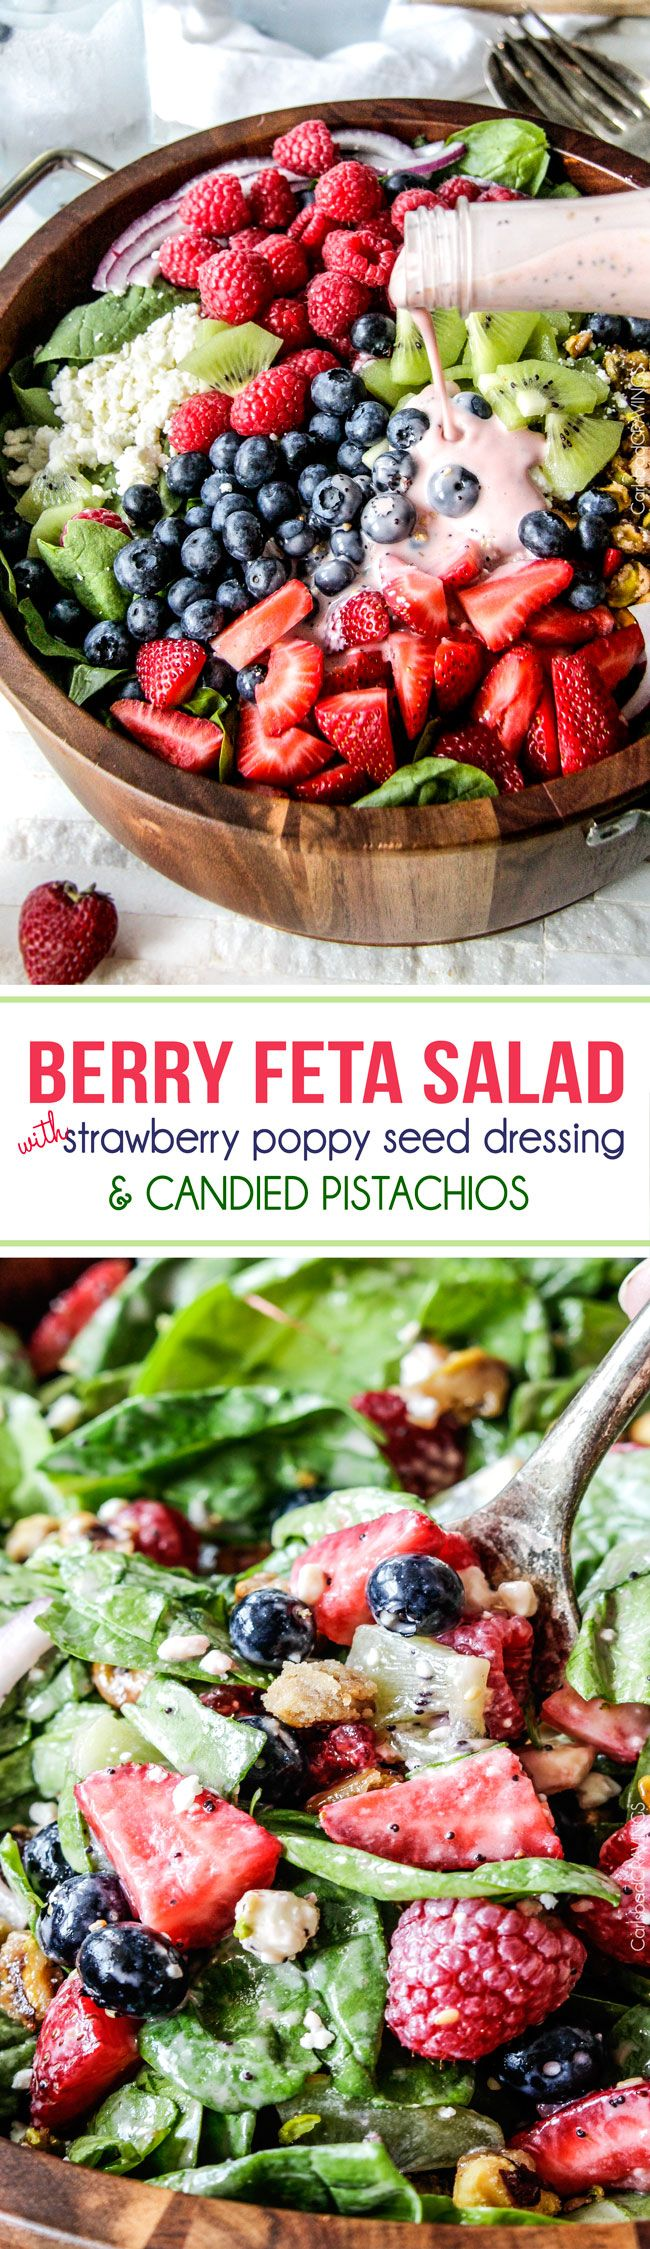 Berry Feta Spinach Salad with Creamy Strawberry Poppy Seed Dressing and CANDIED pistachios is so easy, del